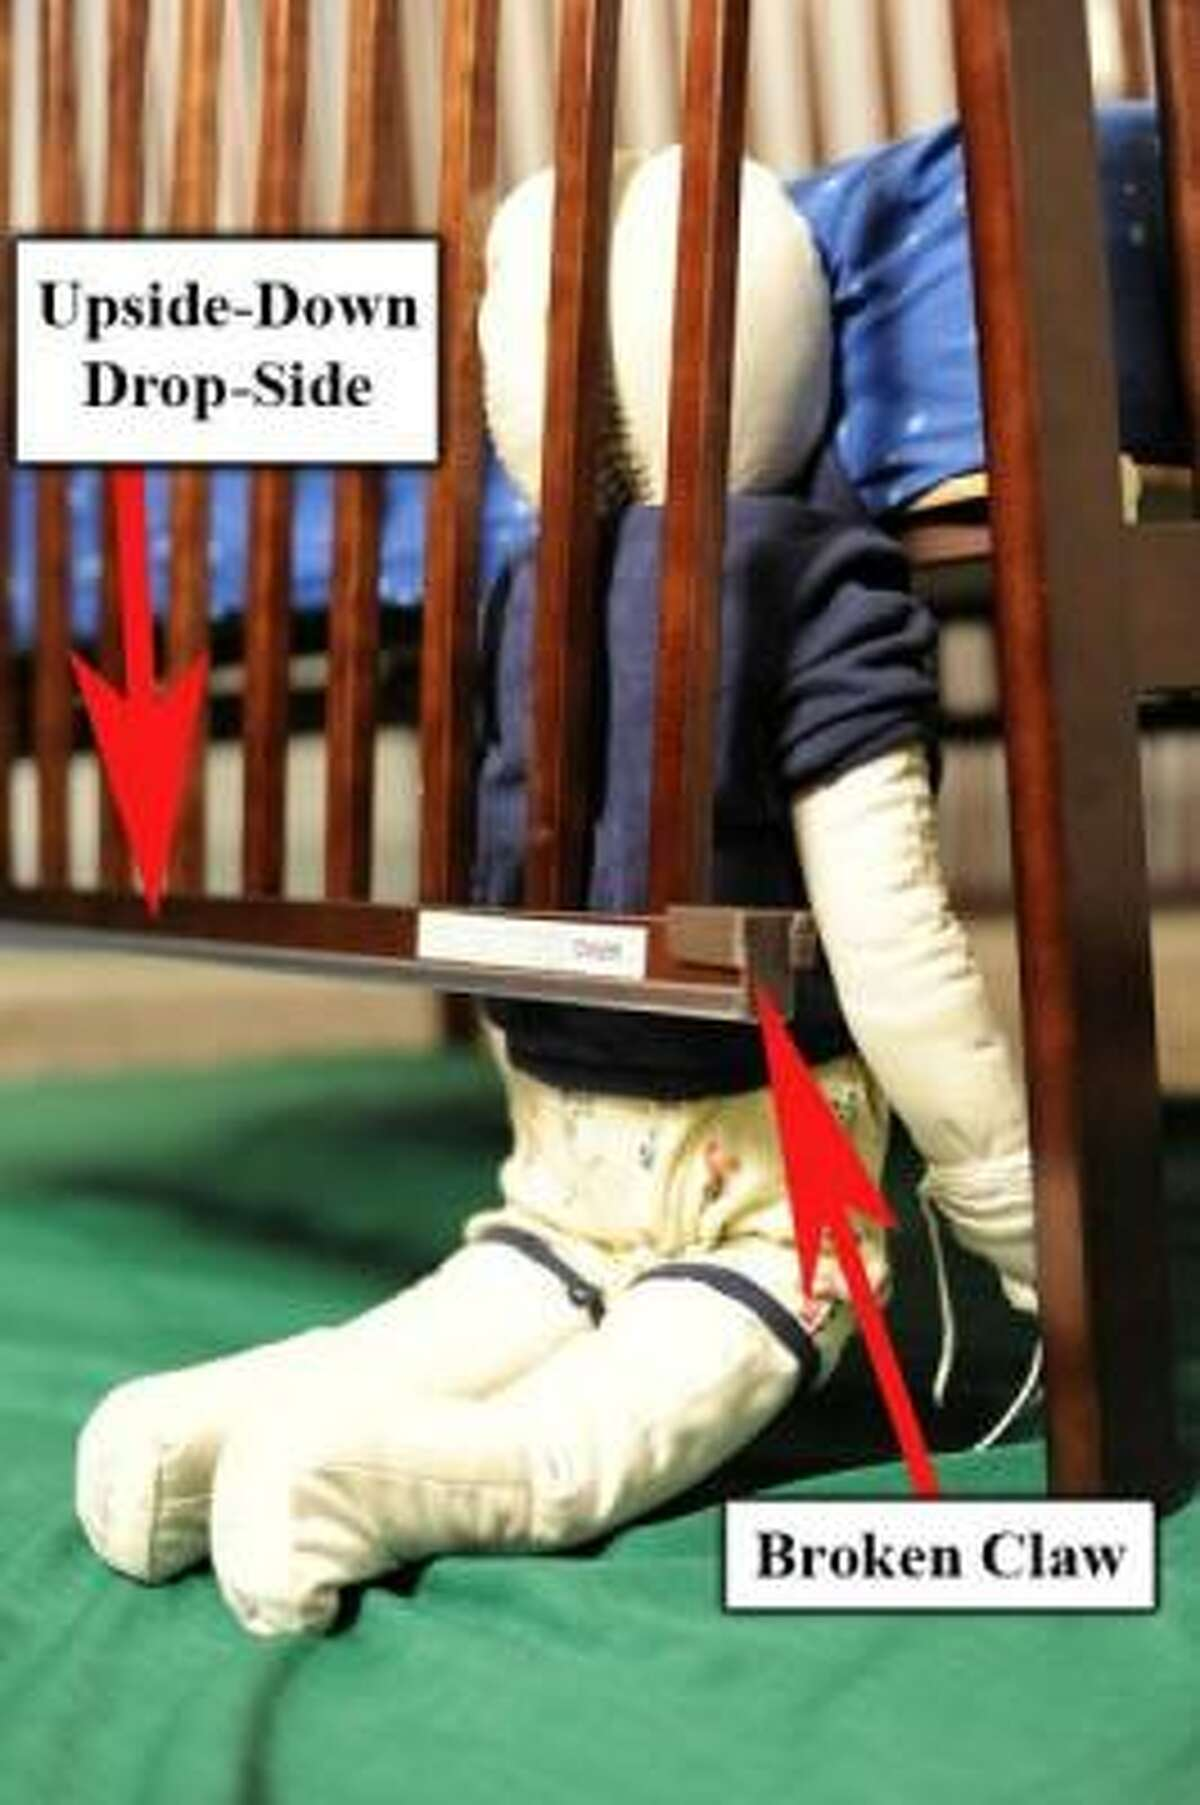 Name of Product: Stork Craft drop-side cribs Hazard: The cribs' drop-side plastic hardware can break, deform, or parts can become missing. In addition, the drop-side can be installed upside-down, which can result in broken or disengaged plastic parts. All of these problems can cause the drop-side to detach in one or more corners. When the drop-side detaches, it creates space between the drop-side and the crib mattress. The bodies of infants and toddlers can become entrapped in the space which can lead to suffocation. Complete detachment of drop-sides can lead to falls from the crib..Description: This recall includes Stork Craft cribs with manufacturing and distribution dates between January 1993 and October 2009. This recall also includes Stork Craft cribs with the Fisher-Price logo that have manufacturing dates between October 1997 and December 2004. The Stork Craft cribs with the Fisher-Price logo were first sold in the U.S. in July 1998 and in Canada in September 1998. The cribs were sold in various styles and finishes. The manufacture date, model number, crib name, country of origin, and the firm's name, address, and contact information are located on the assembly instruction sheet attached to the mattress support board. The firm's insignia